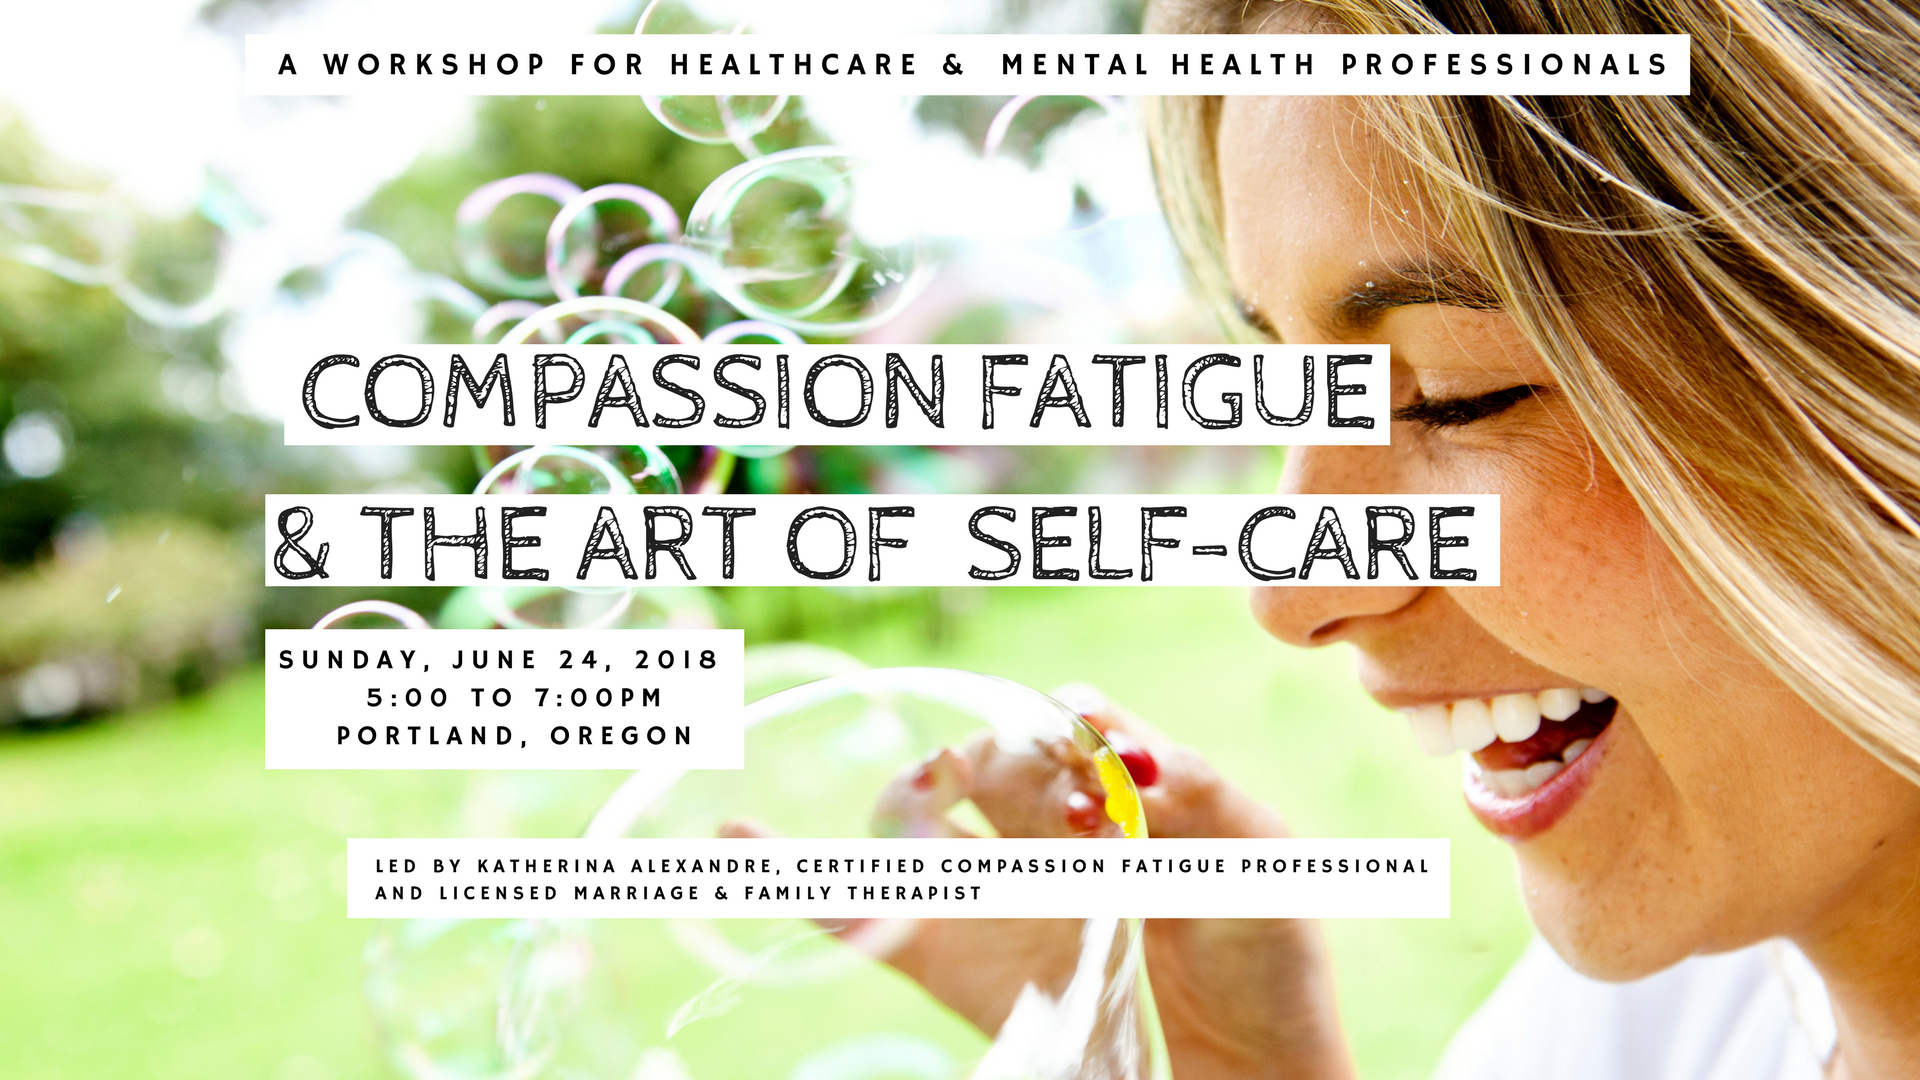 COMPASSION FATIGUE & THE ART OF SELF-CARE FOR